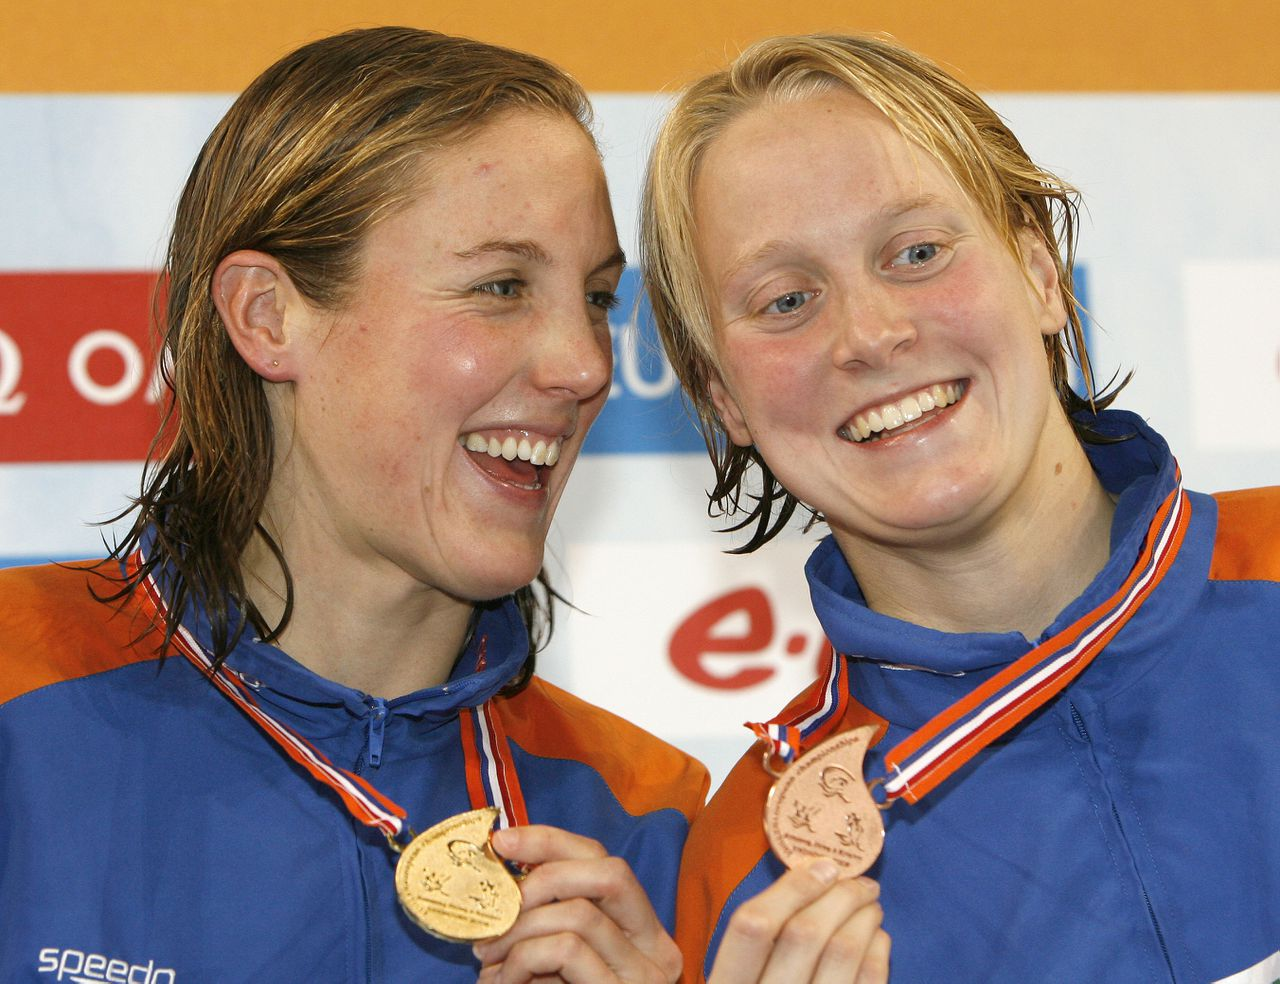 Marleen Veldhuis (links) en Inge Dekker. Foto Reuters Marleen Veldhuis of the Netherlands, left, who took the gold, and her compatriot Inge Decker, bronze, celebrate during the medal ceremony of the Women's 100m freestyle during the European Swimming Championships in Eindhoven, The Netherlands, Thursday March 20, 2008. (AP Photo/Michael Sohn)